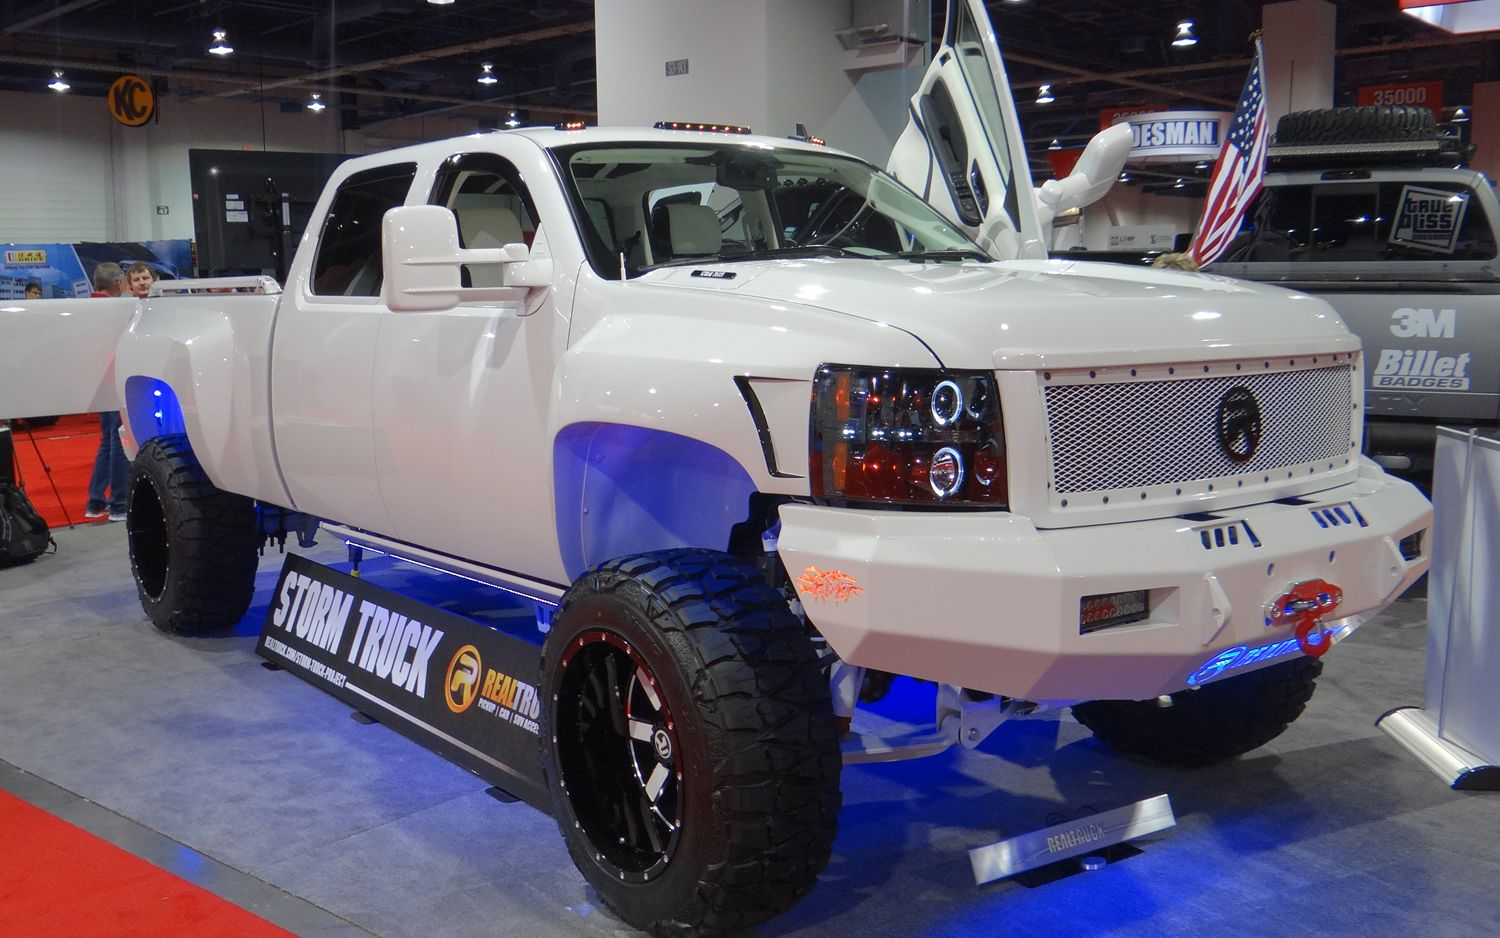 Truck 2500 chevy truck for sale : The Storm Truck is being highlighted in Readers' Rides 2013 by ...